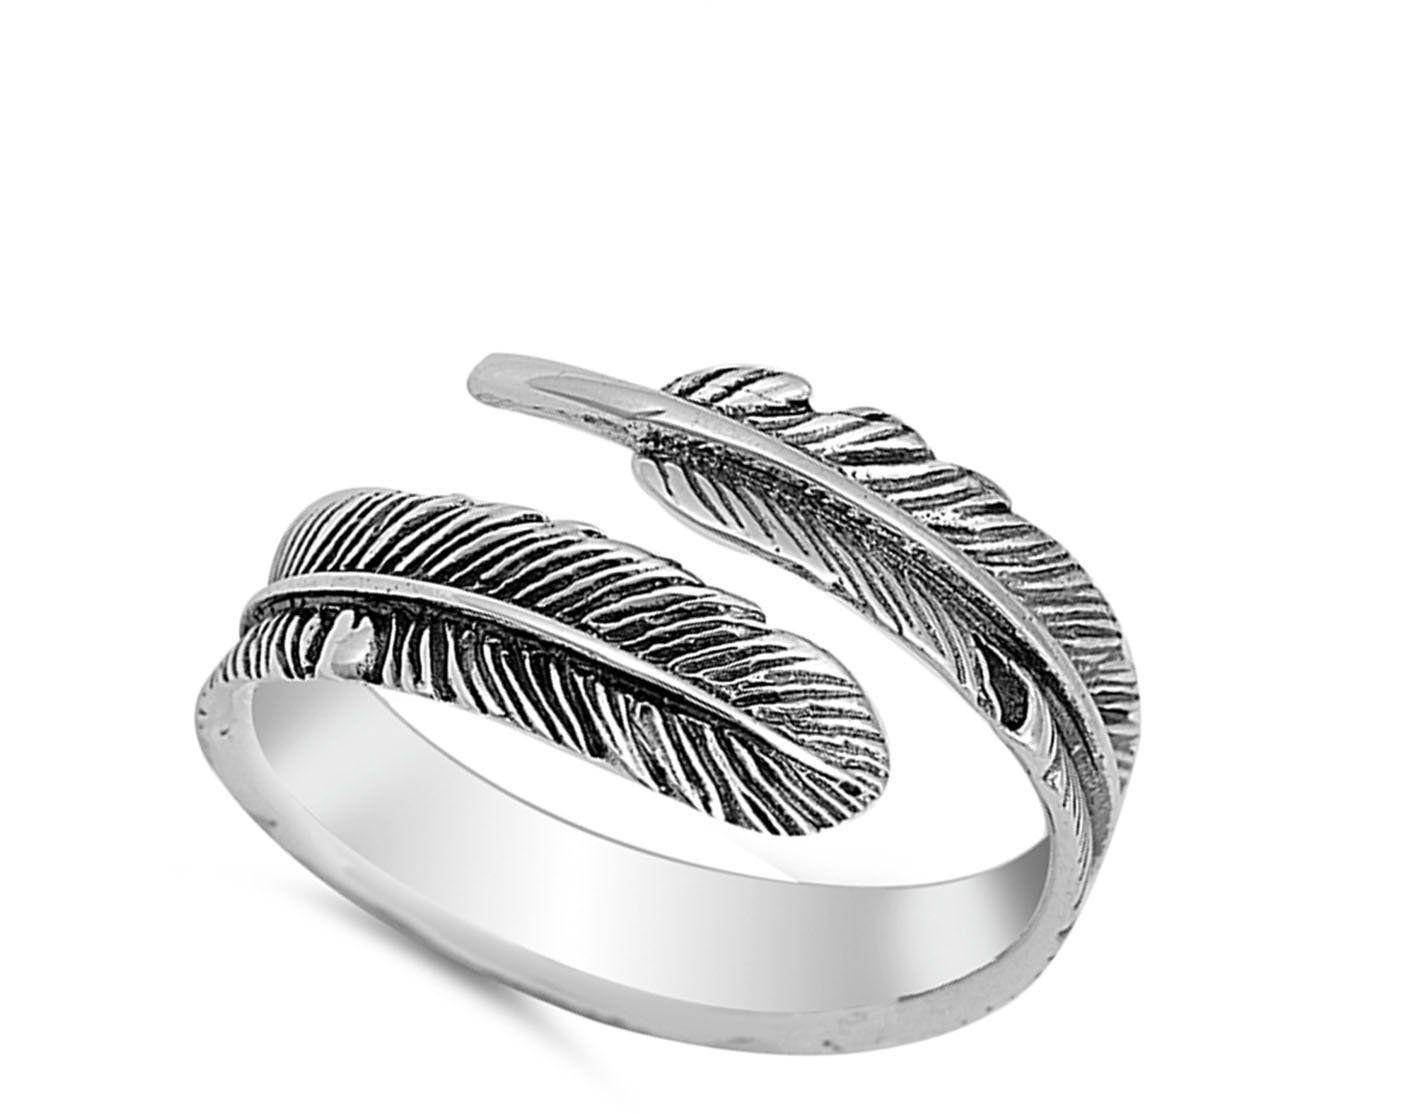 Open Oxidized Wrapped Leaf Ring New .925 Sterling Silver Feather Band Sizes 4-10